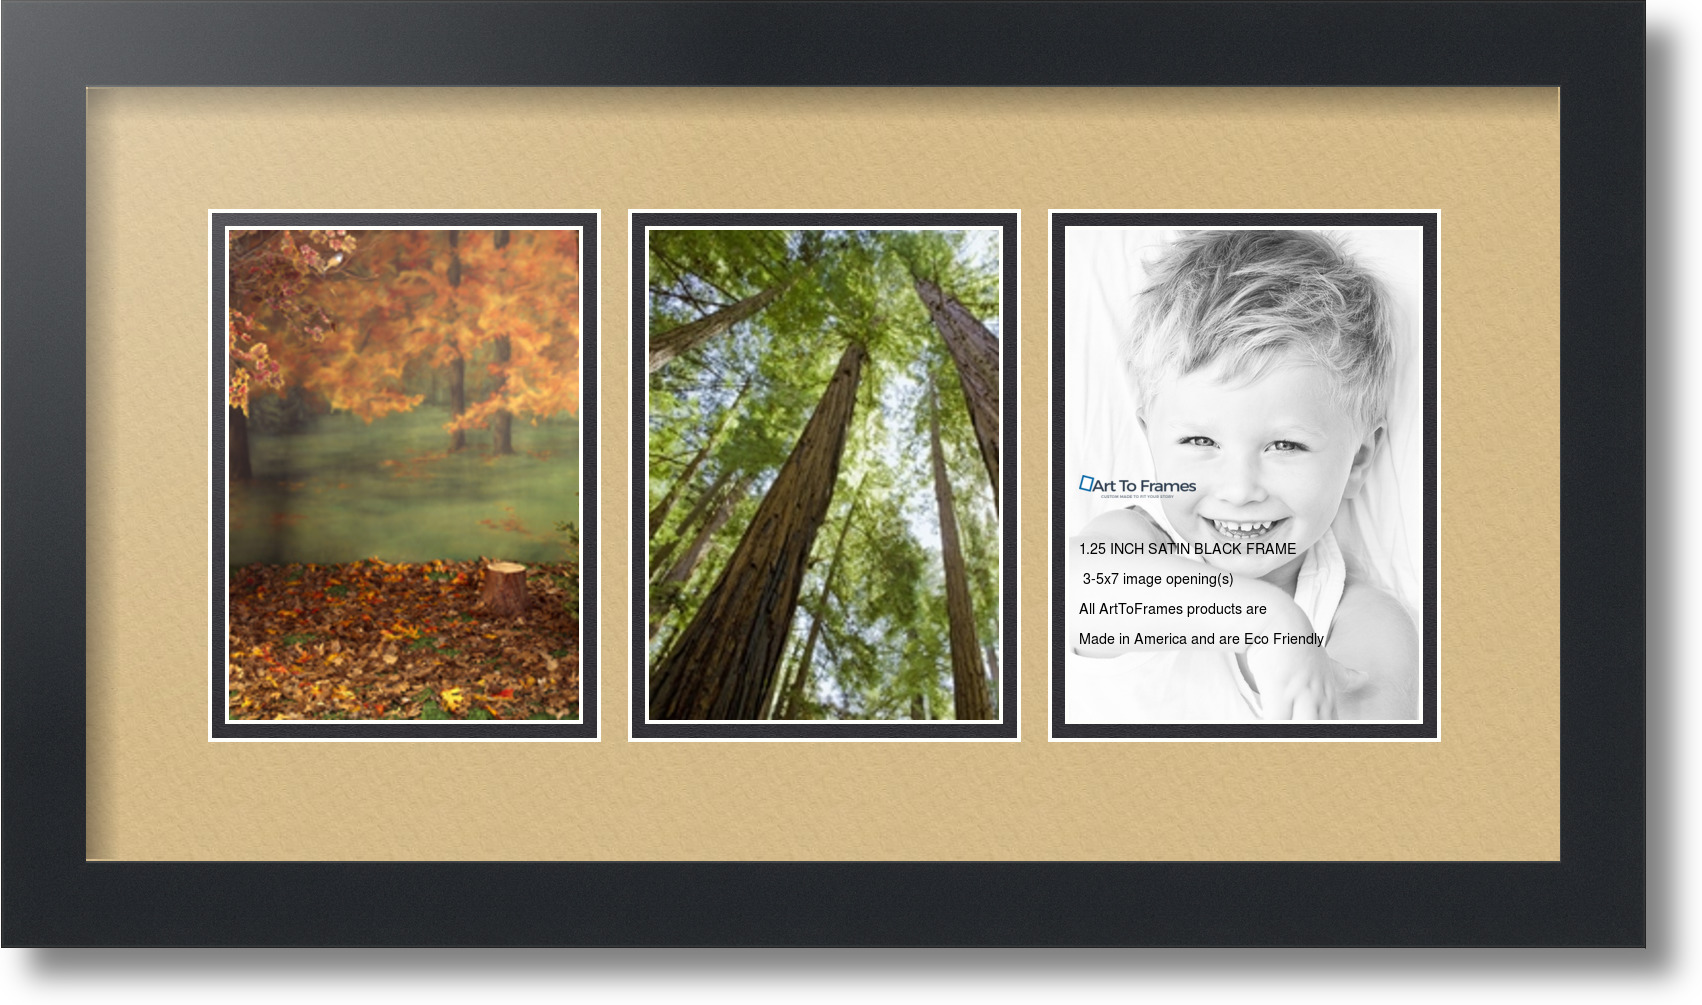 arttoframes collage mat picture photo frame 3 5x7 openings in satin black 24. Black Bedroom Furniture Sets. Home Design Ideas